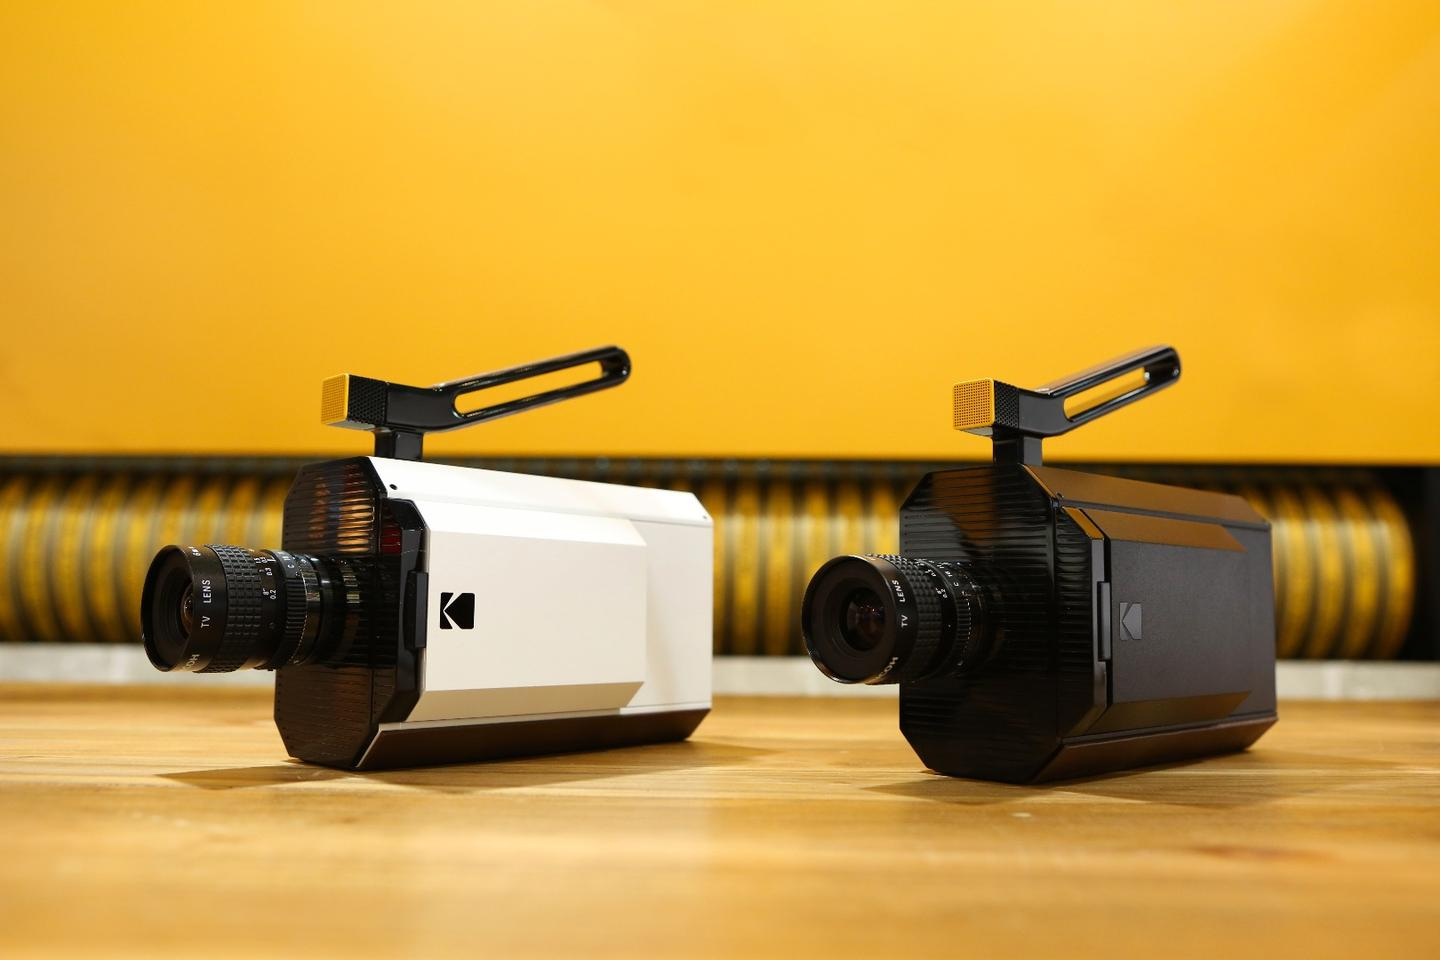 The Kodak Super 8 camera will be available in two colors – midnight black and bone china (off-white, in other words)